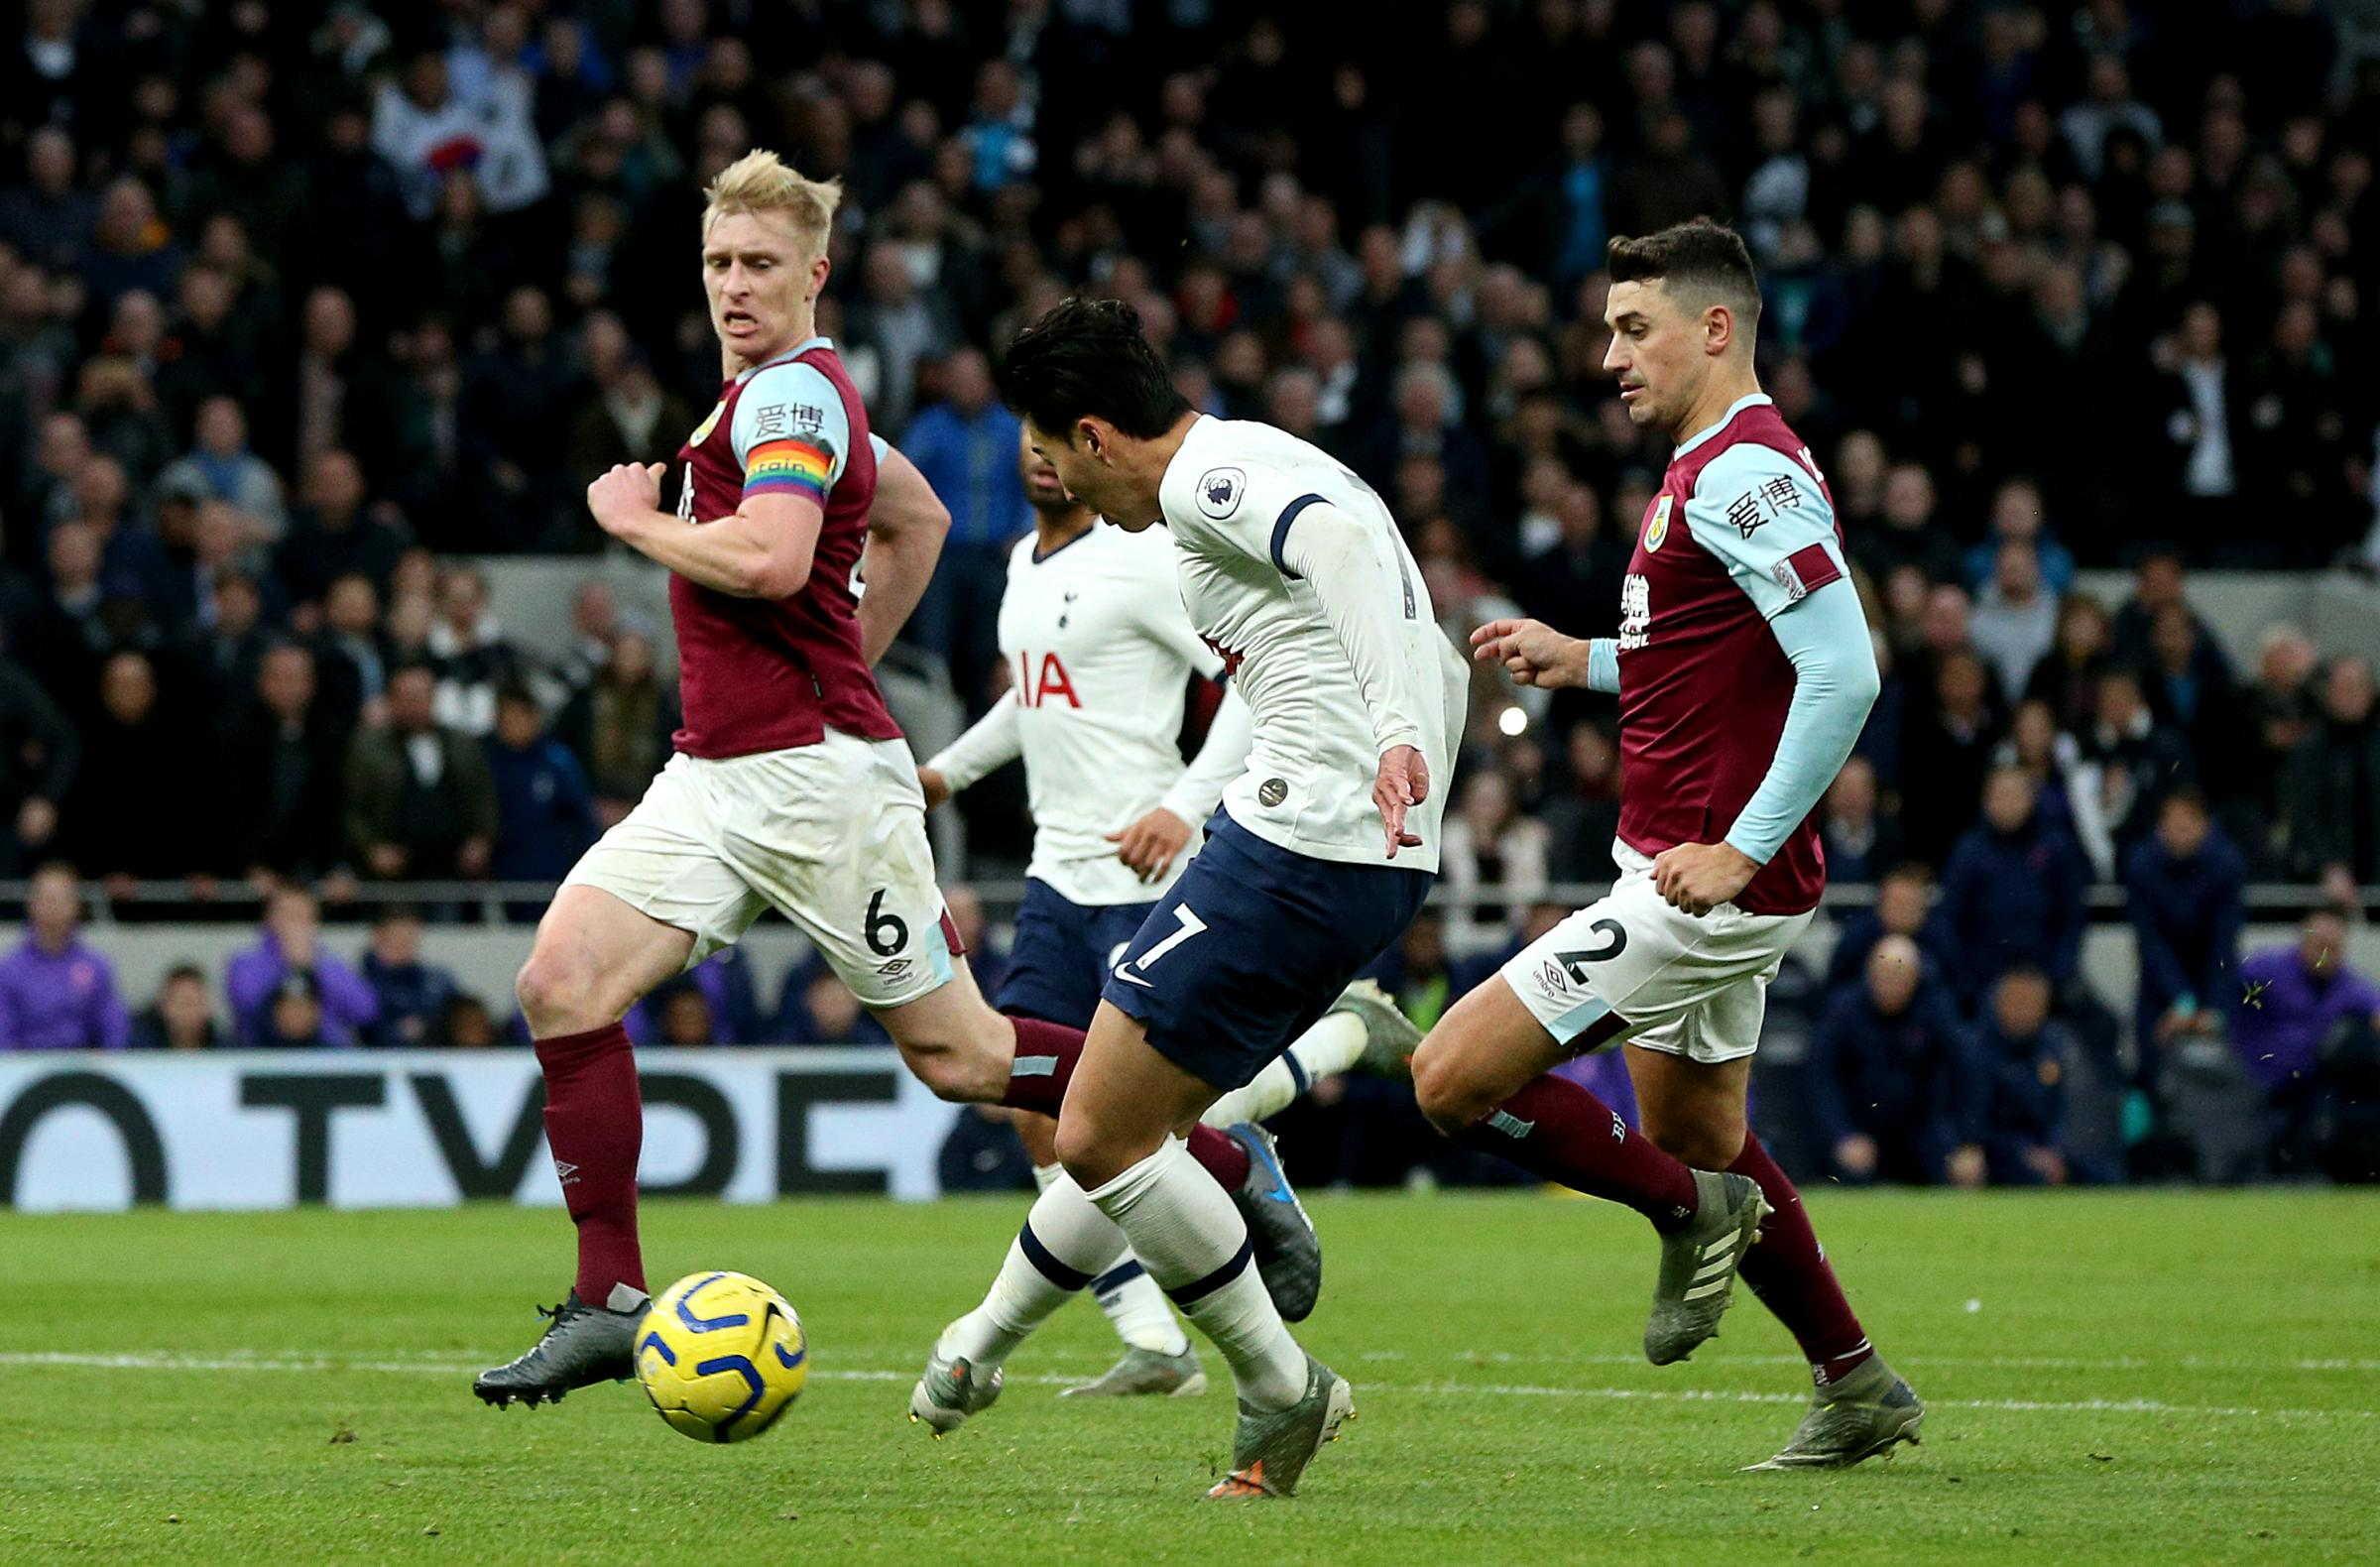 Three things we learned from the Clarets' 5-0 defeat at Spurs